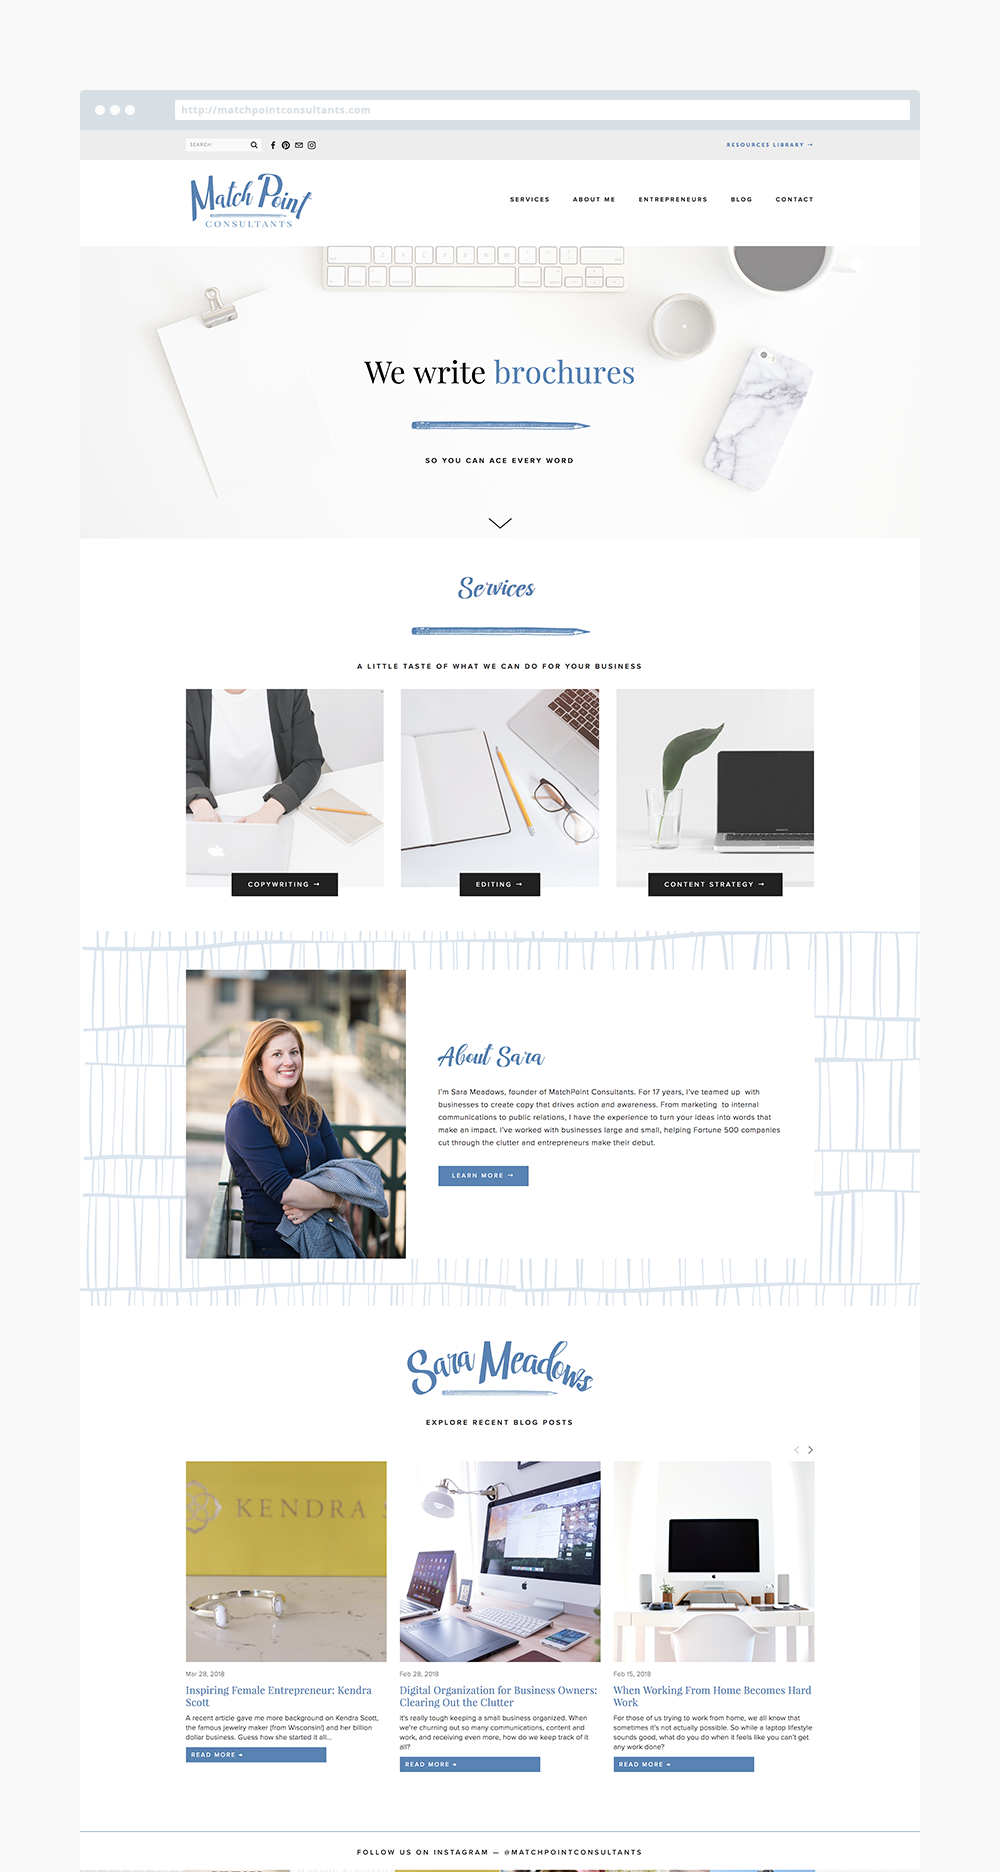 The Busy Bee Portfolio Custom Squarespace Website Match Point Consultants